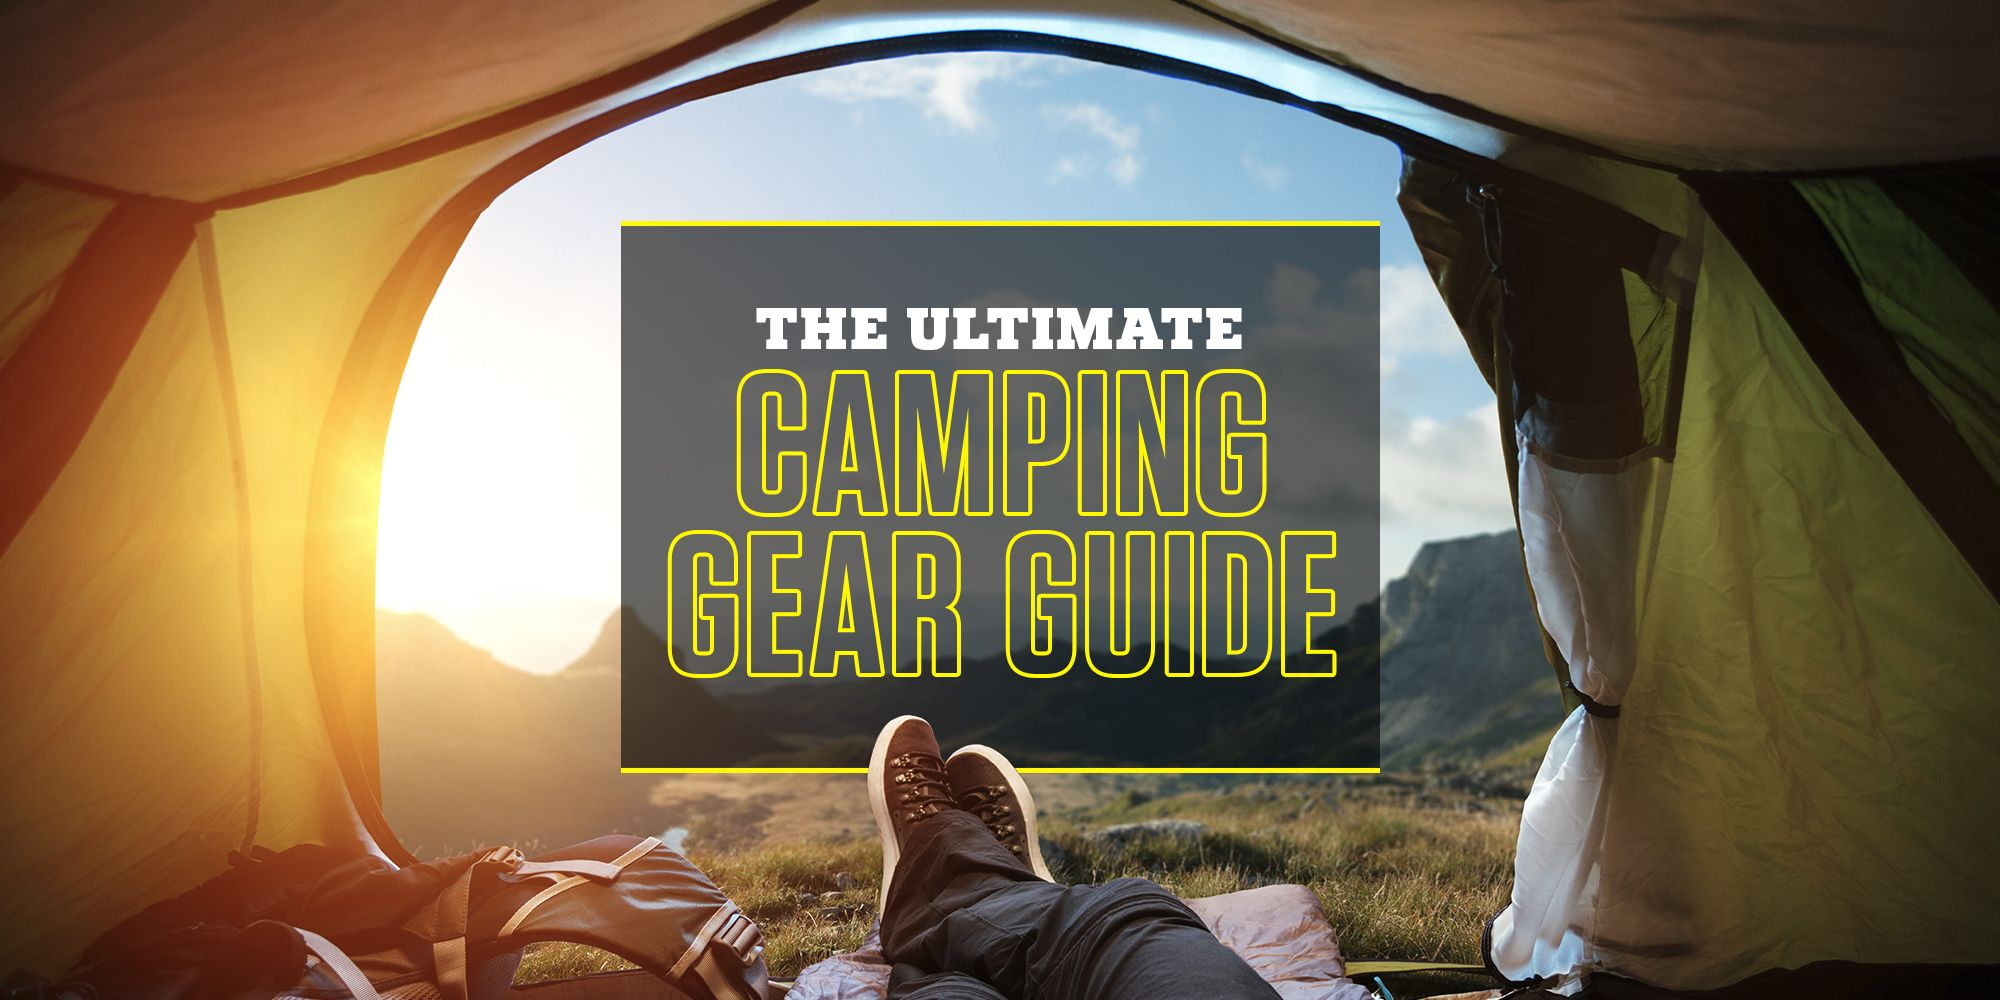 The Ultimate Camping Gear Guide